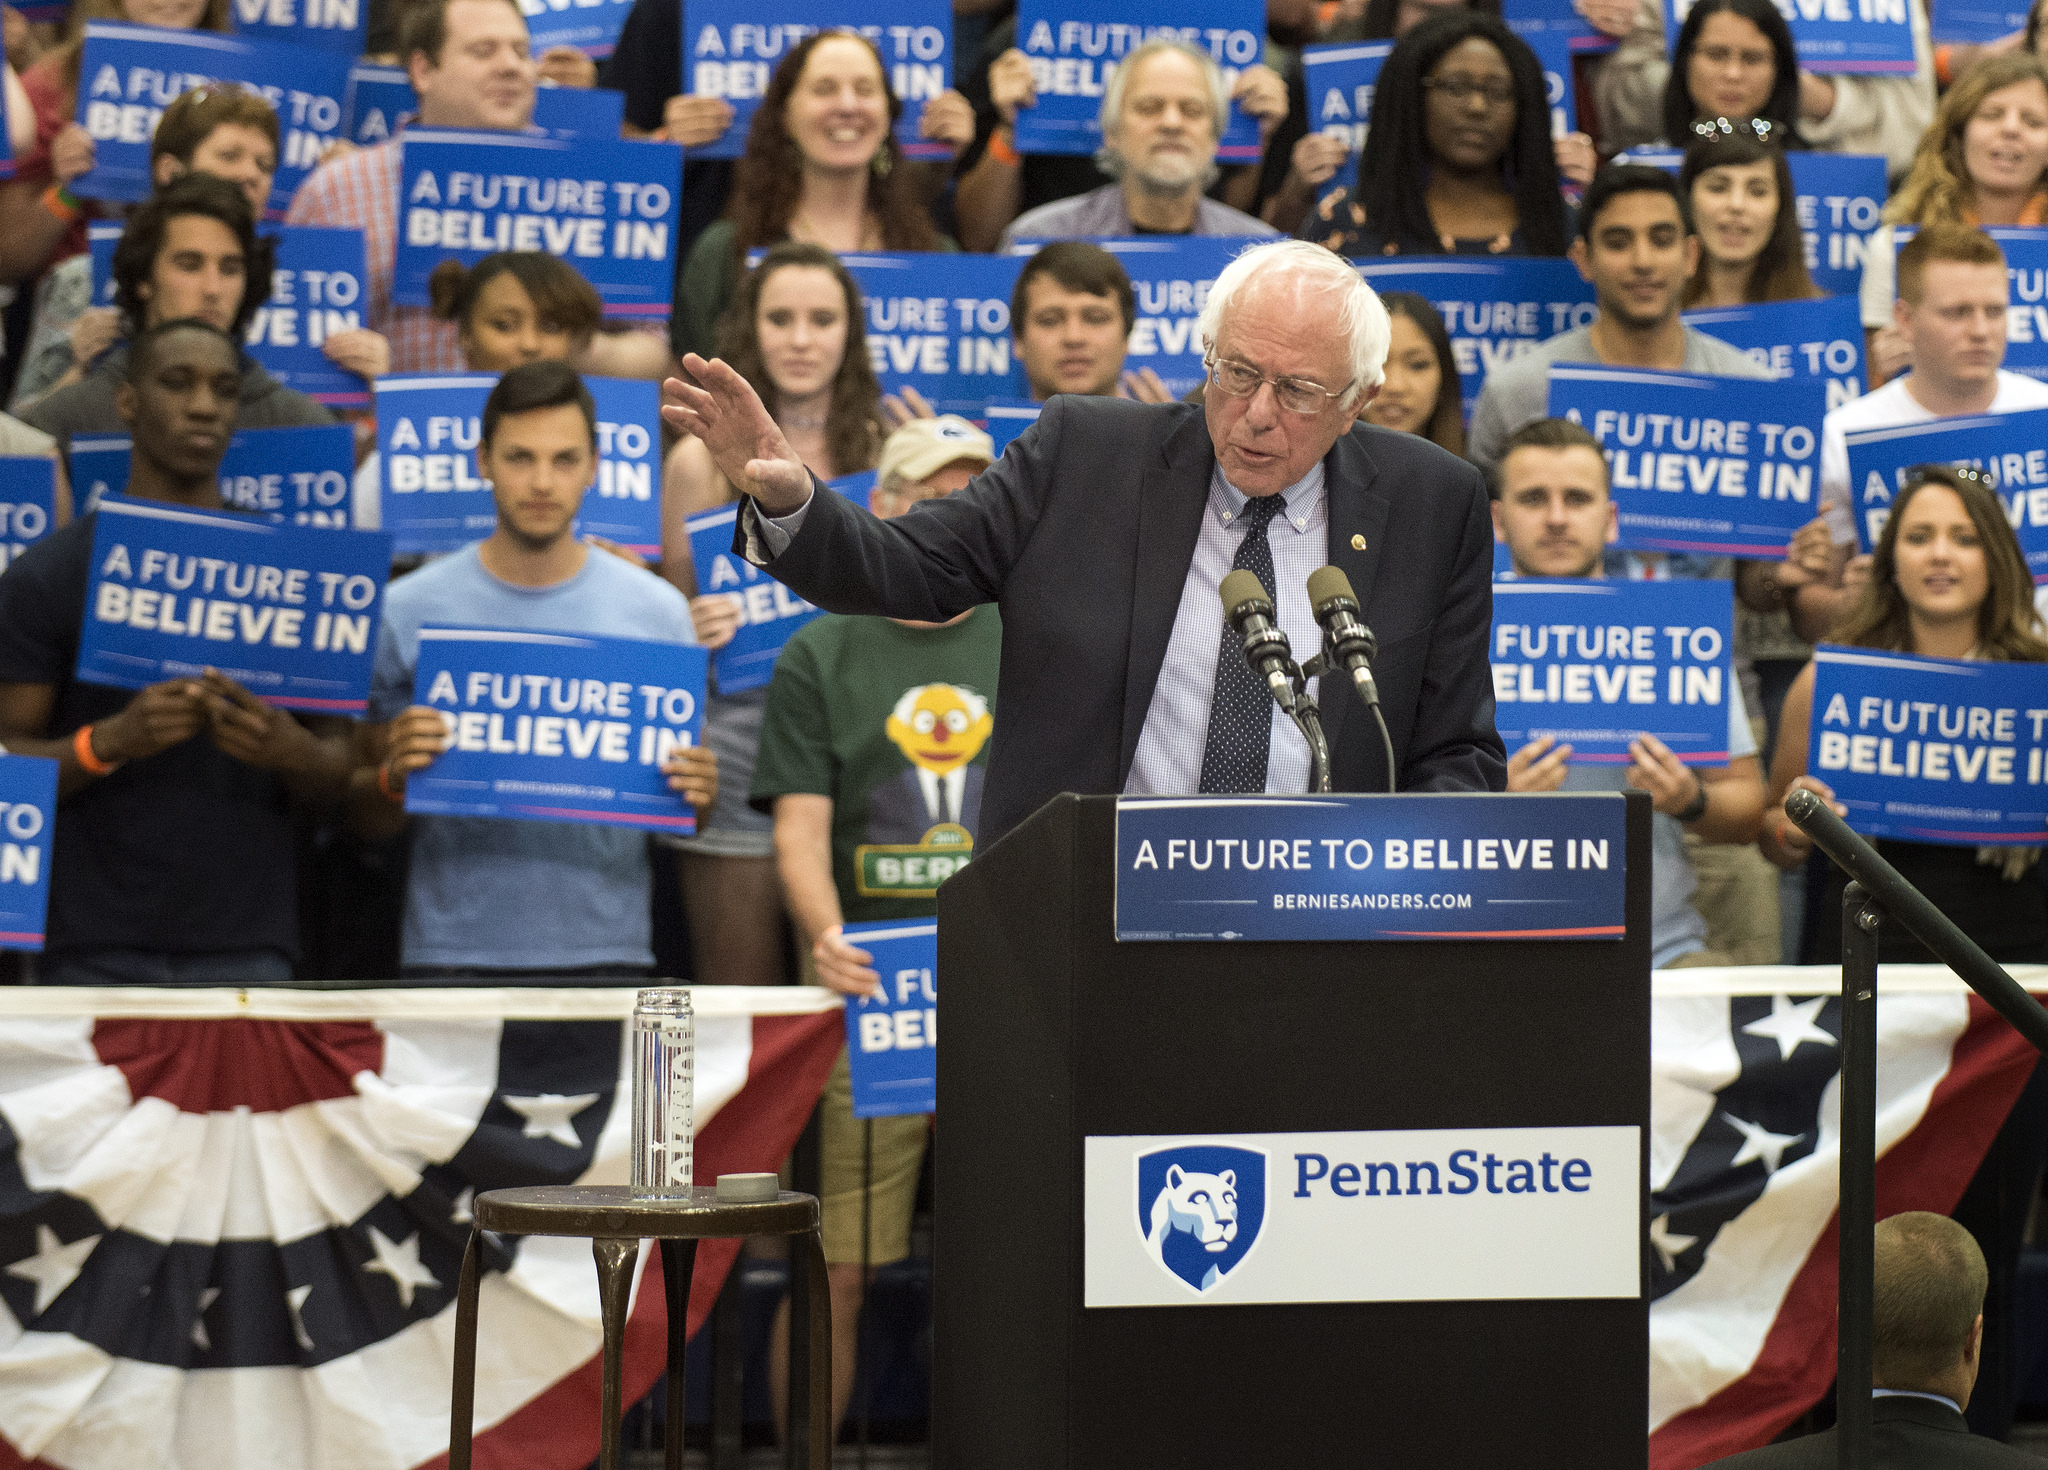 """""""[Sanders] has brought millions of young people into politics. According to CIRCLE, more youth have voted for Sanders than for Clinton and Trump combined,"""" writes Christopher Beem in a recent Fortune article. Photo credit: Penn State"""